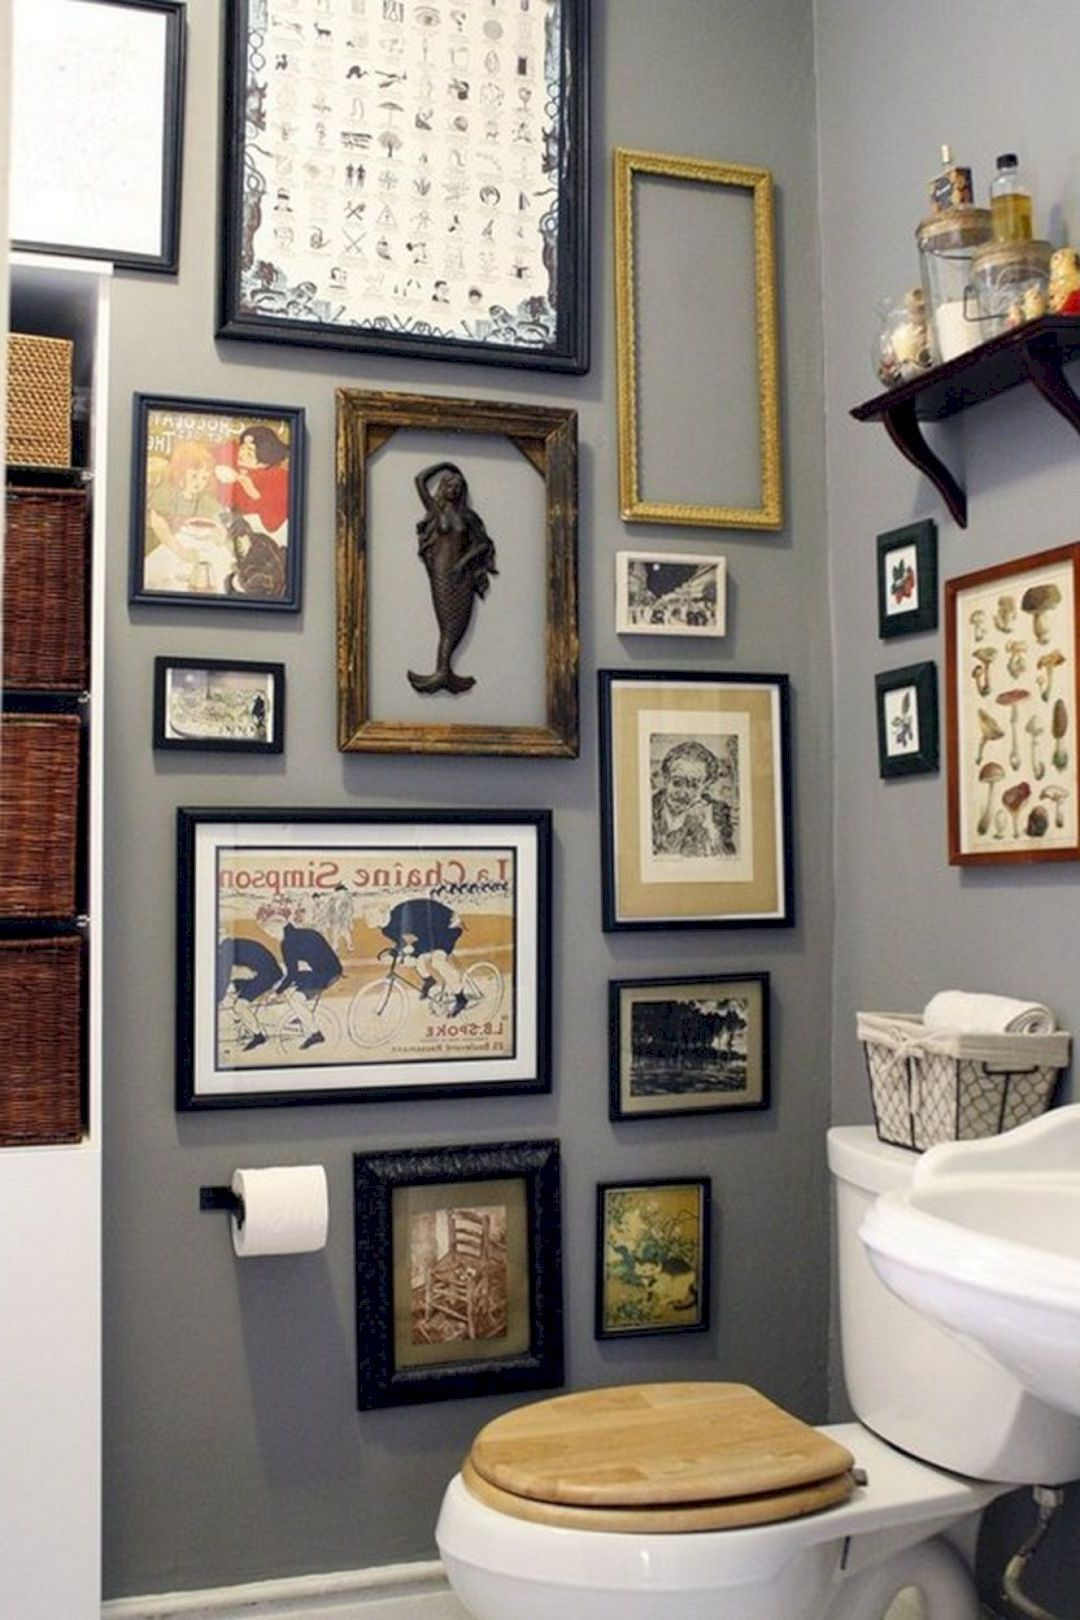 10 Best Bathroom Artwork Ideas Get Ideas Small Apartment Decorating Decorating Small Spaces Decorating With Pictures